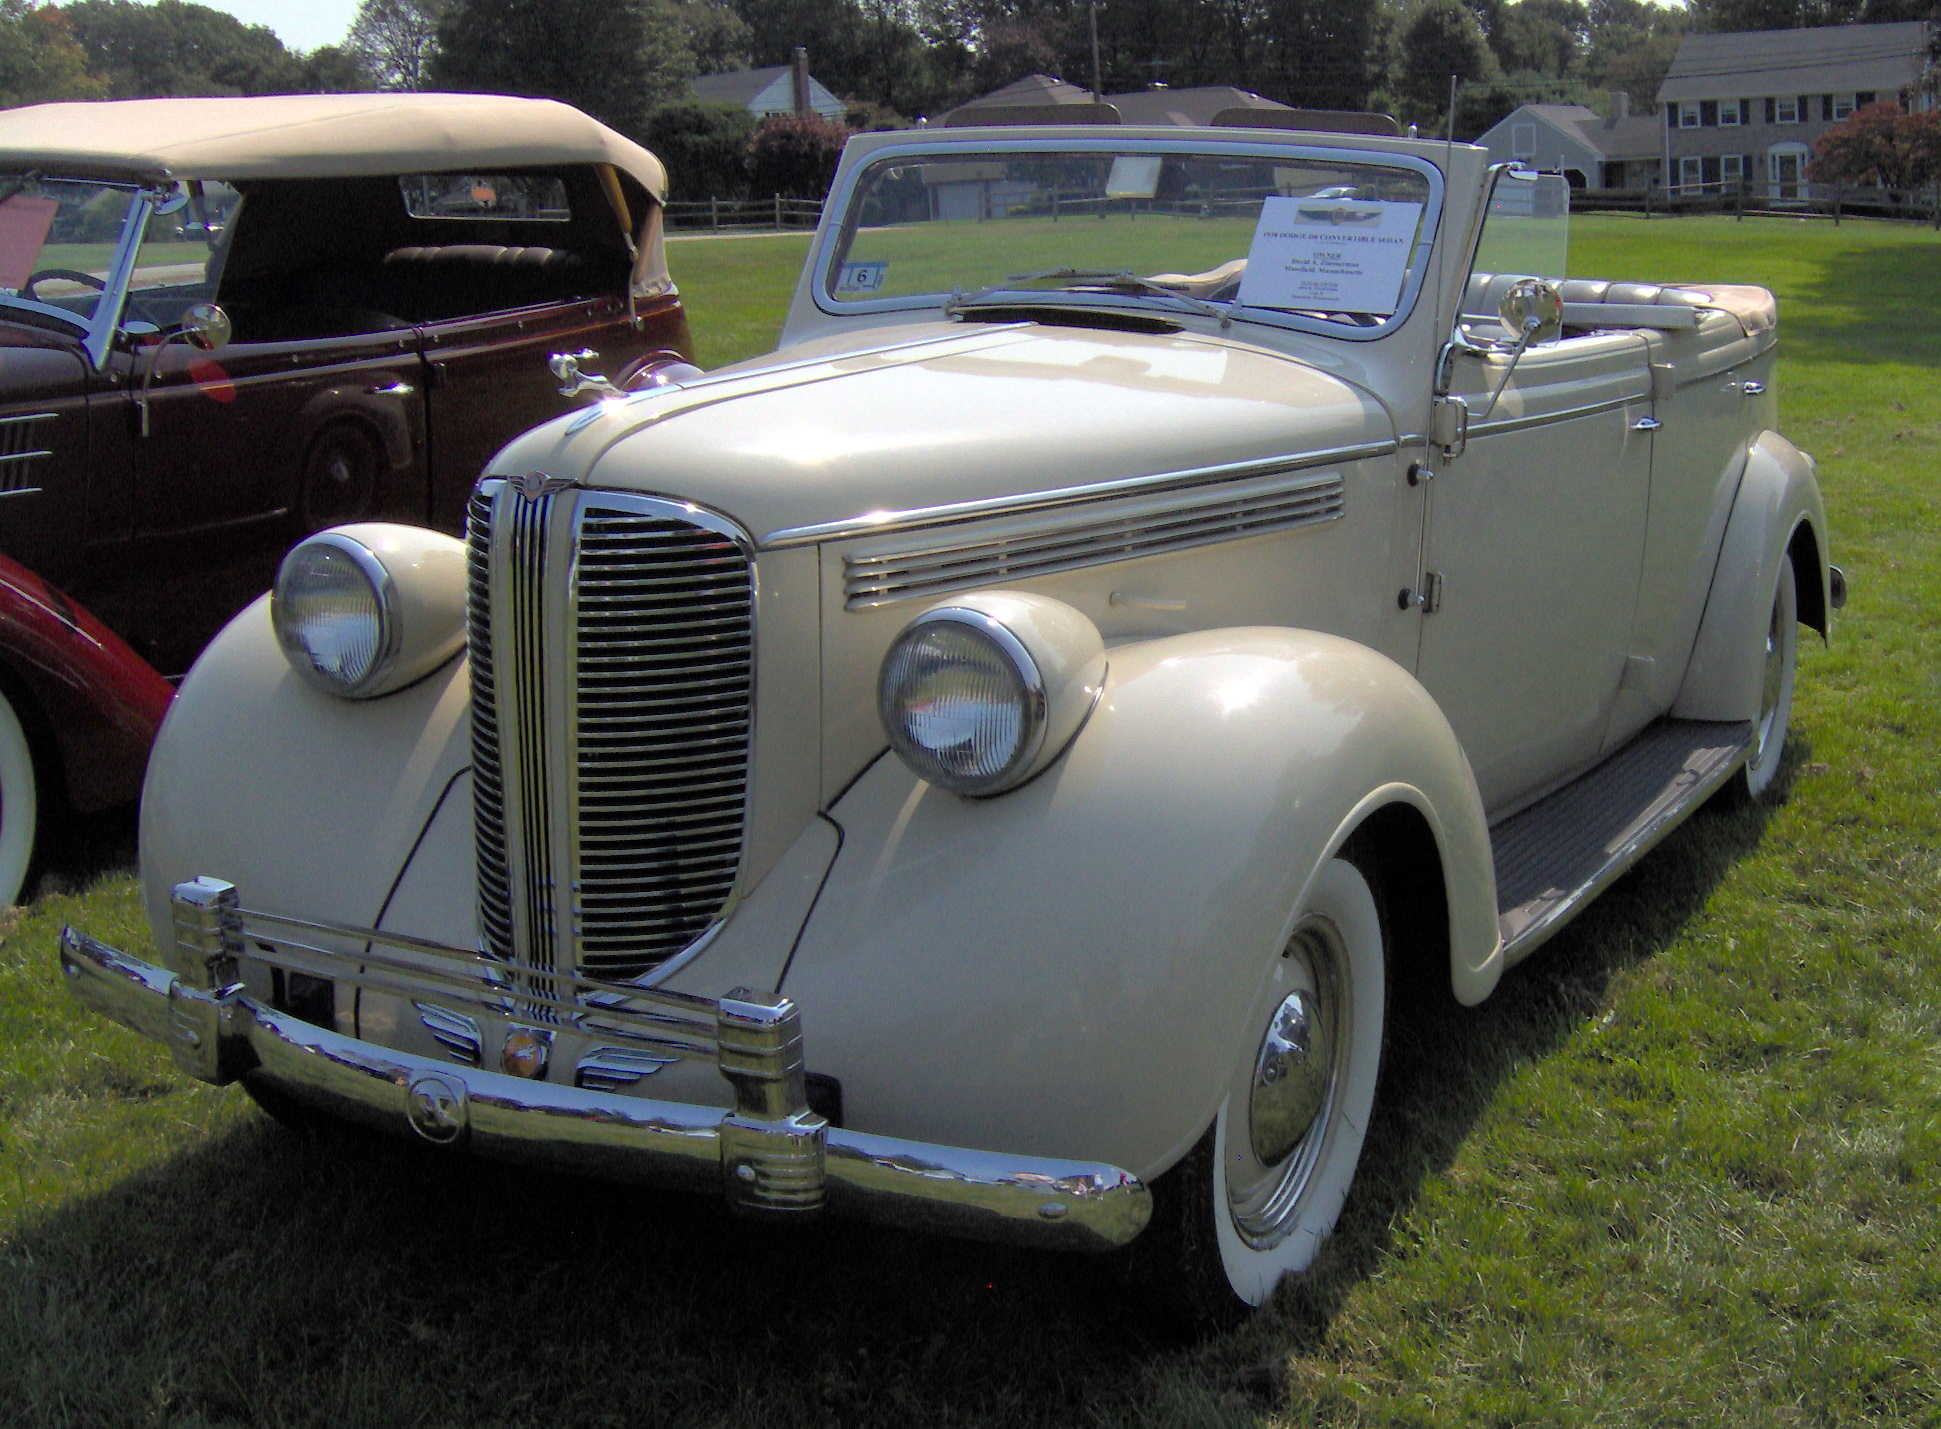 File 1929 Chevrolet 2 Door coach furthermore 1981 82 Amc Eagle And Concord Sundancer Convertible additionally 5862348 additionally File 1938 Dodge Convertible Sedan additionally Iron Maiden Somewhere Back In Time Poster. on back door car cover